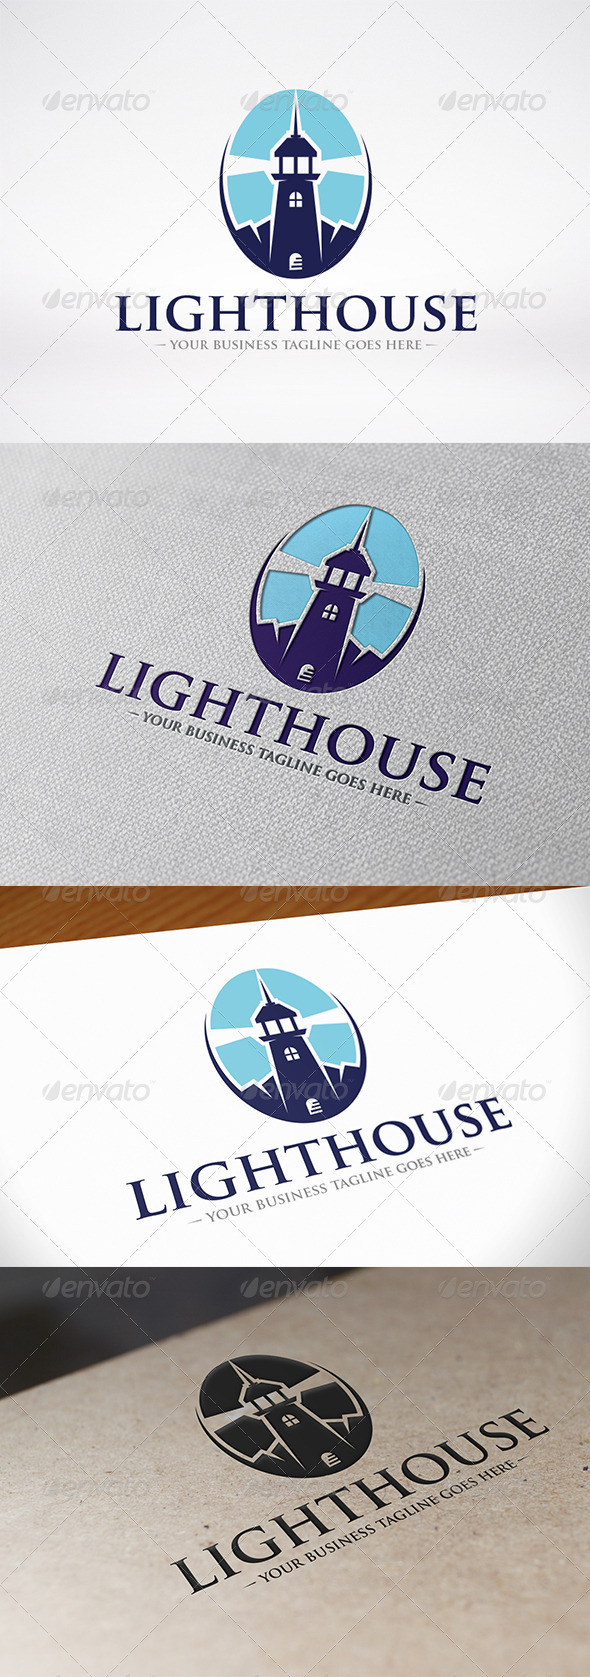 GraphicRiver Lighthouse Logo Template 7406631